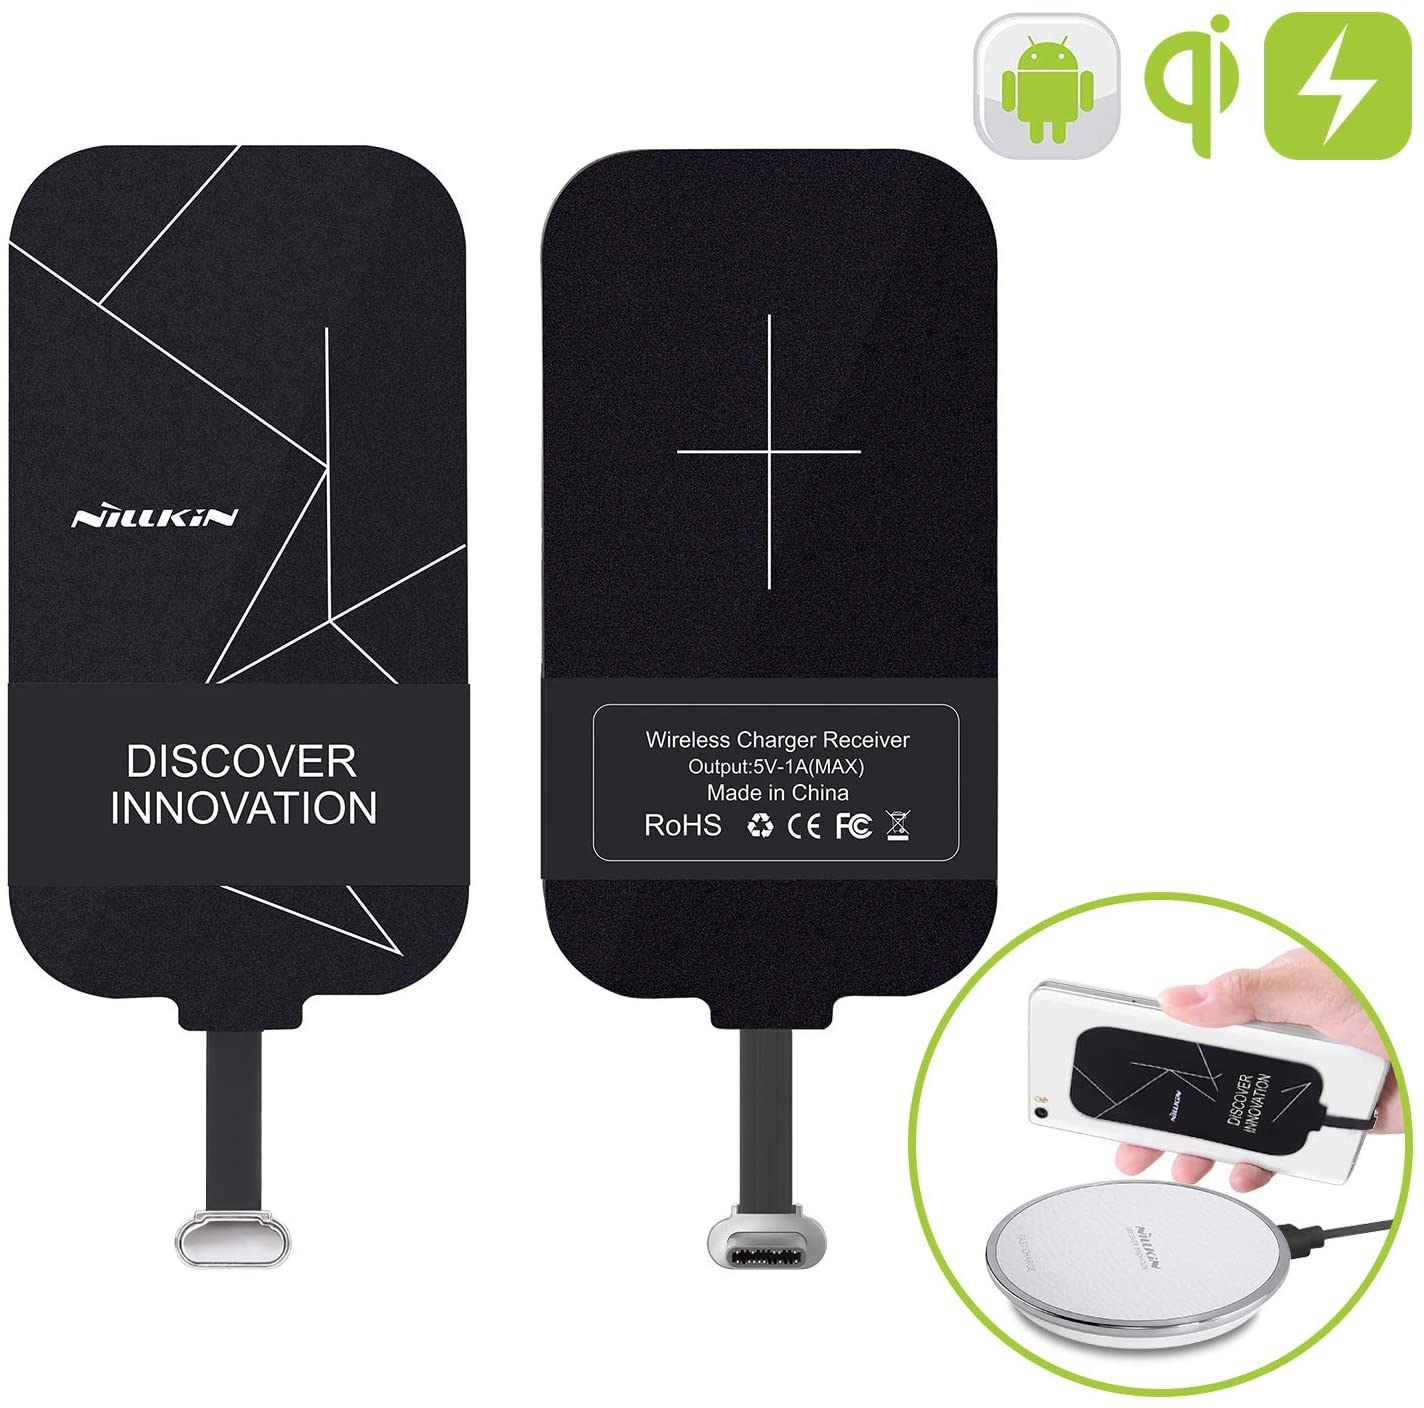 Nillkin Qi Wireless Charger Receiver, Ultra Thin 0.16cm Magic Tag Wireless Charging Receiver Patch Module Chip for Google Pixel 2 XL/LG V20/OnePlus 6/6T/7/7 Pro and Other USB C Phones